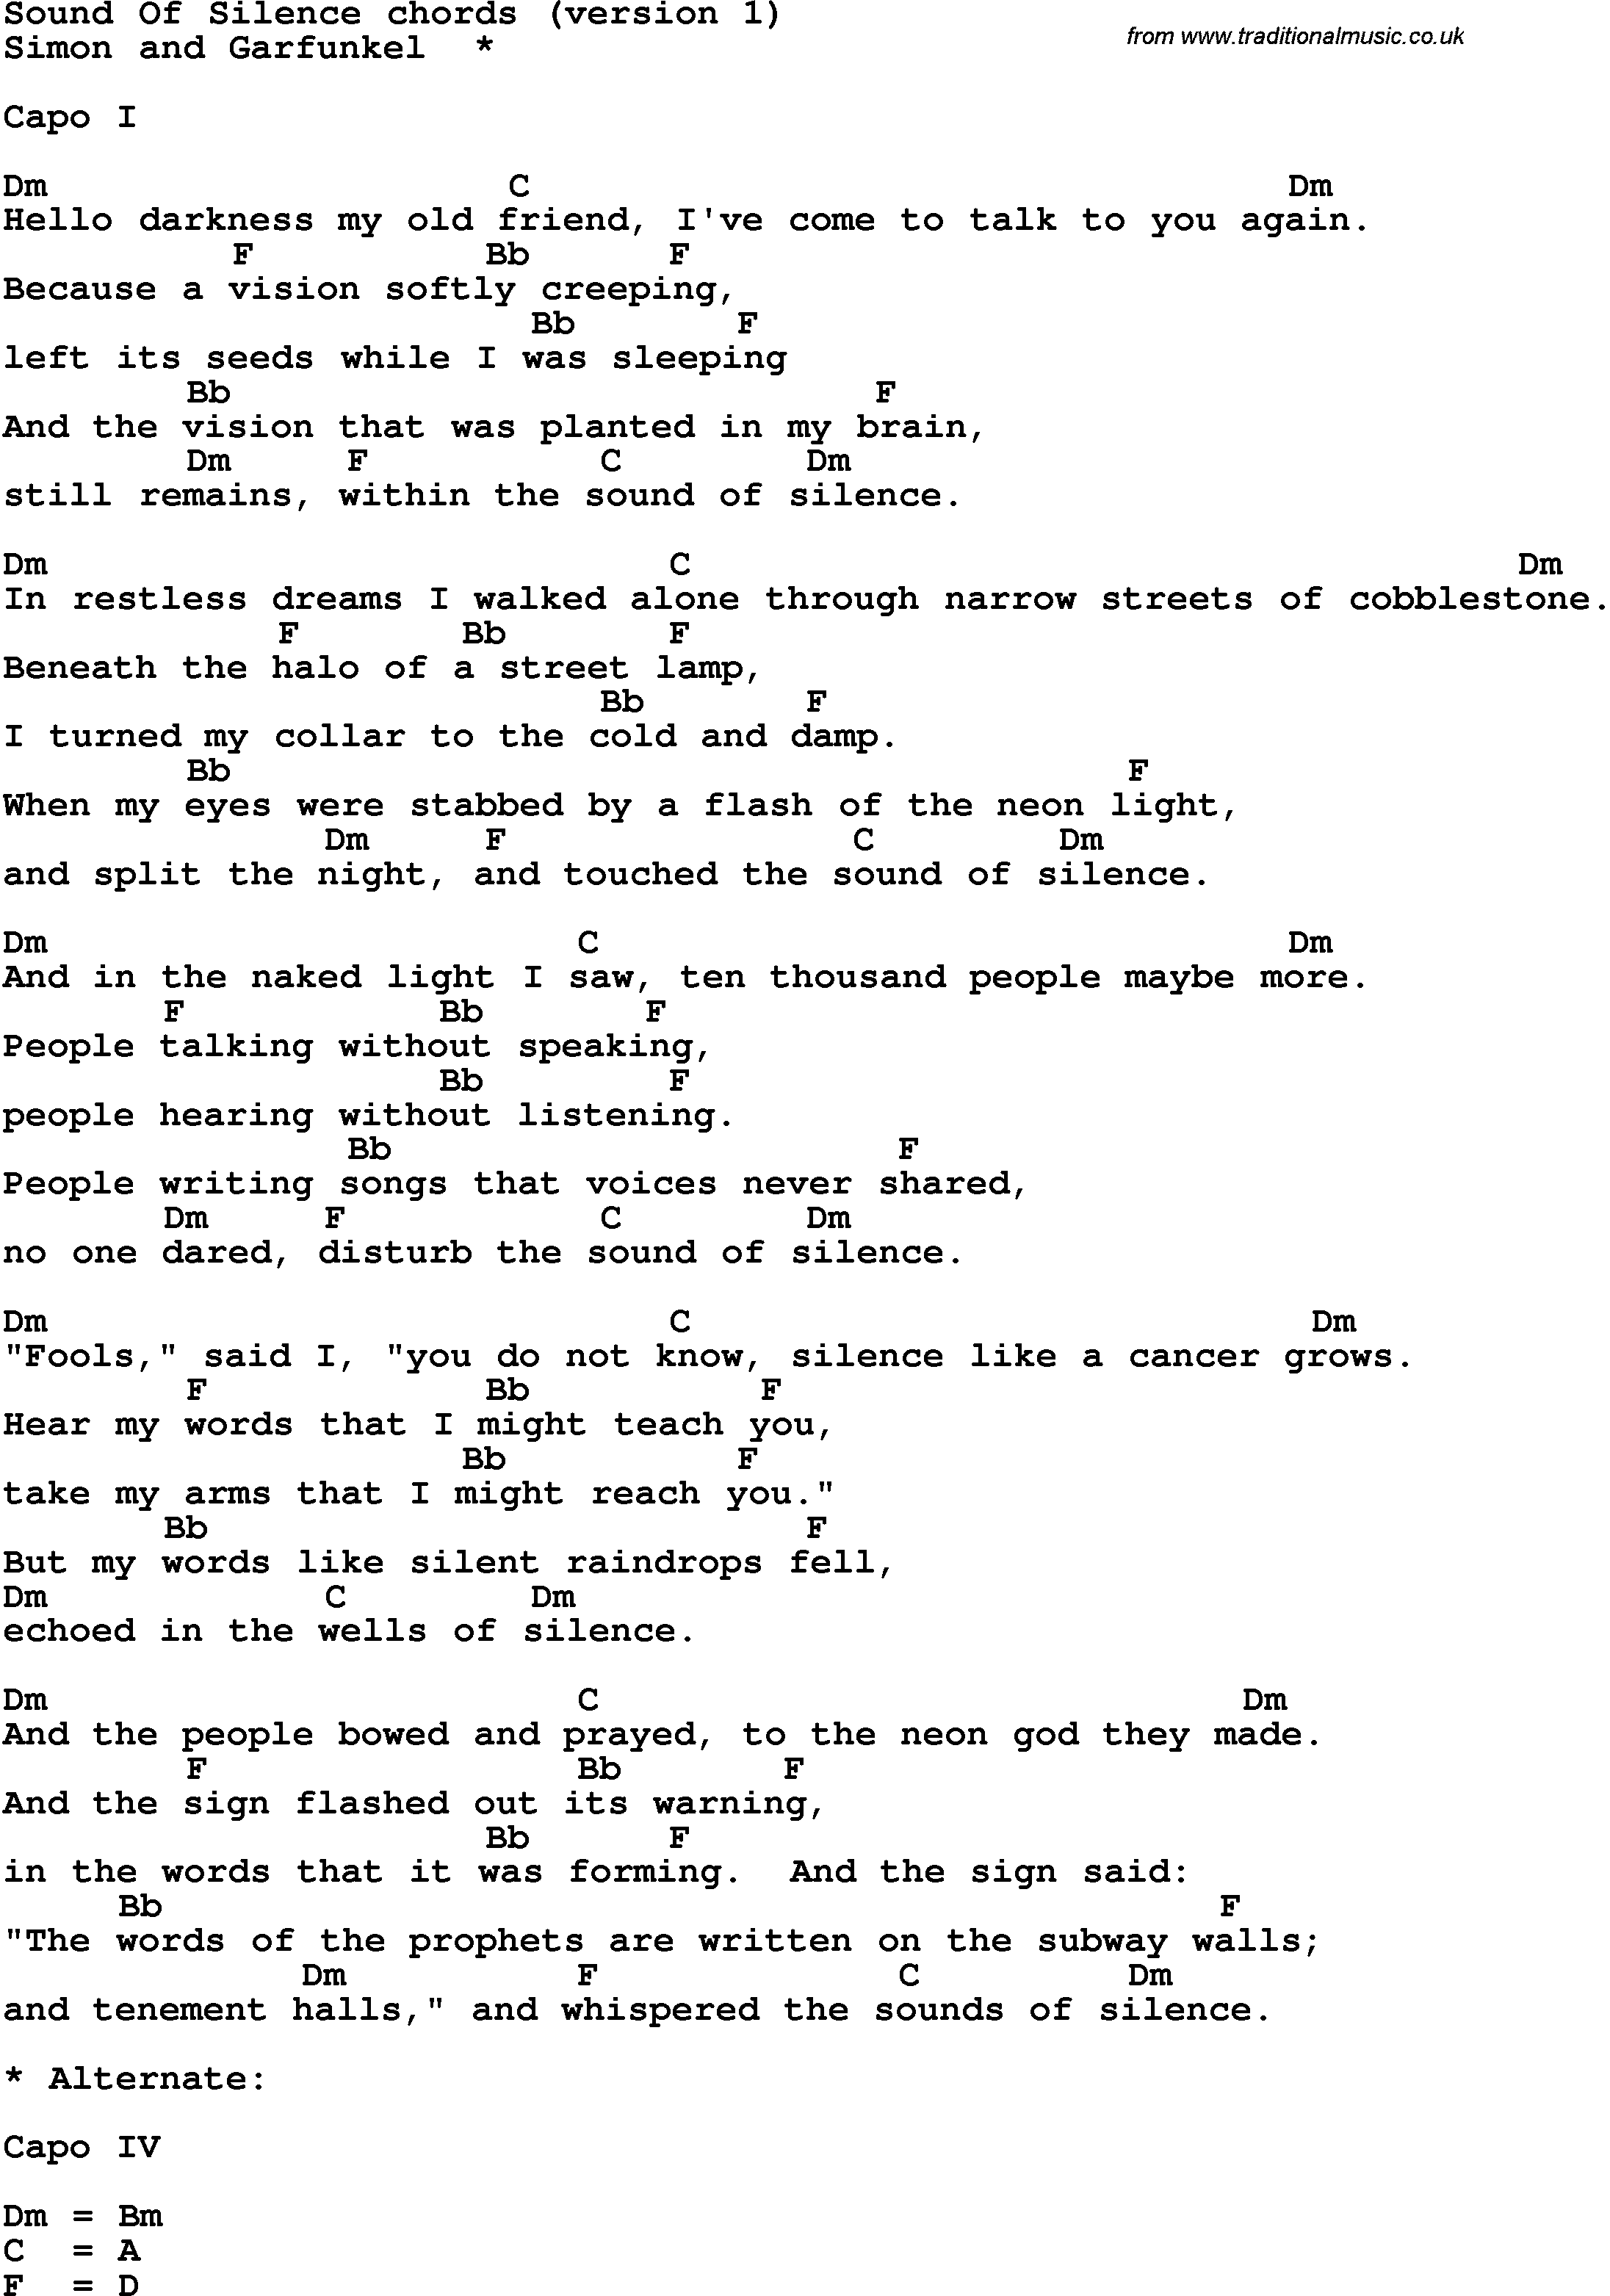 Song Lyrics With Guitar Chords For Sound Of Silence Inspire Me